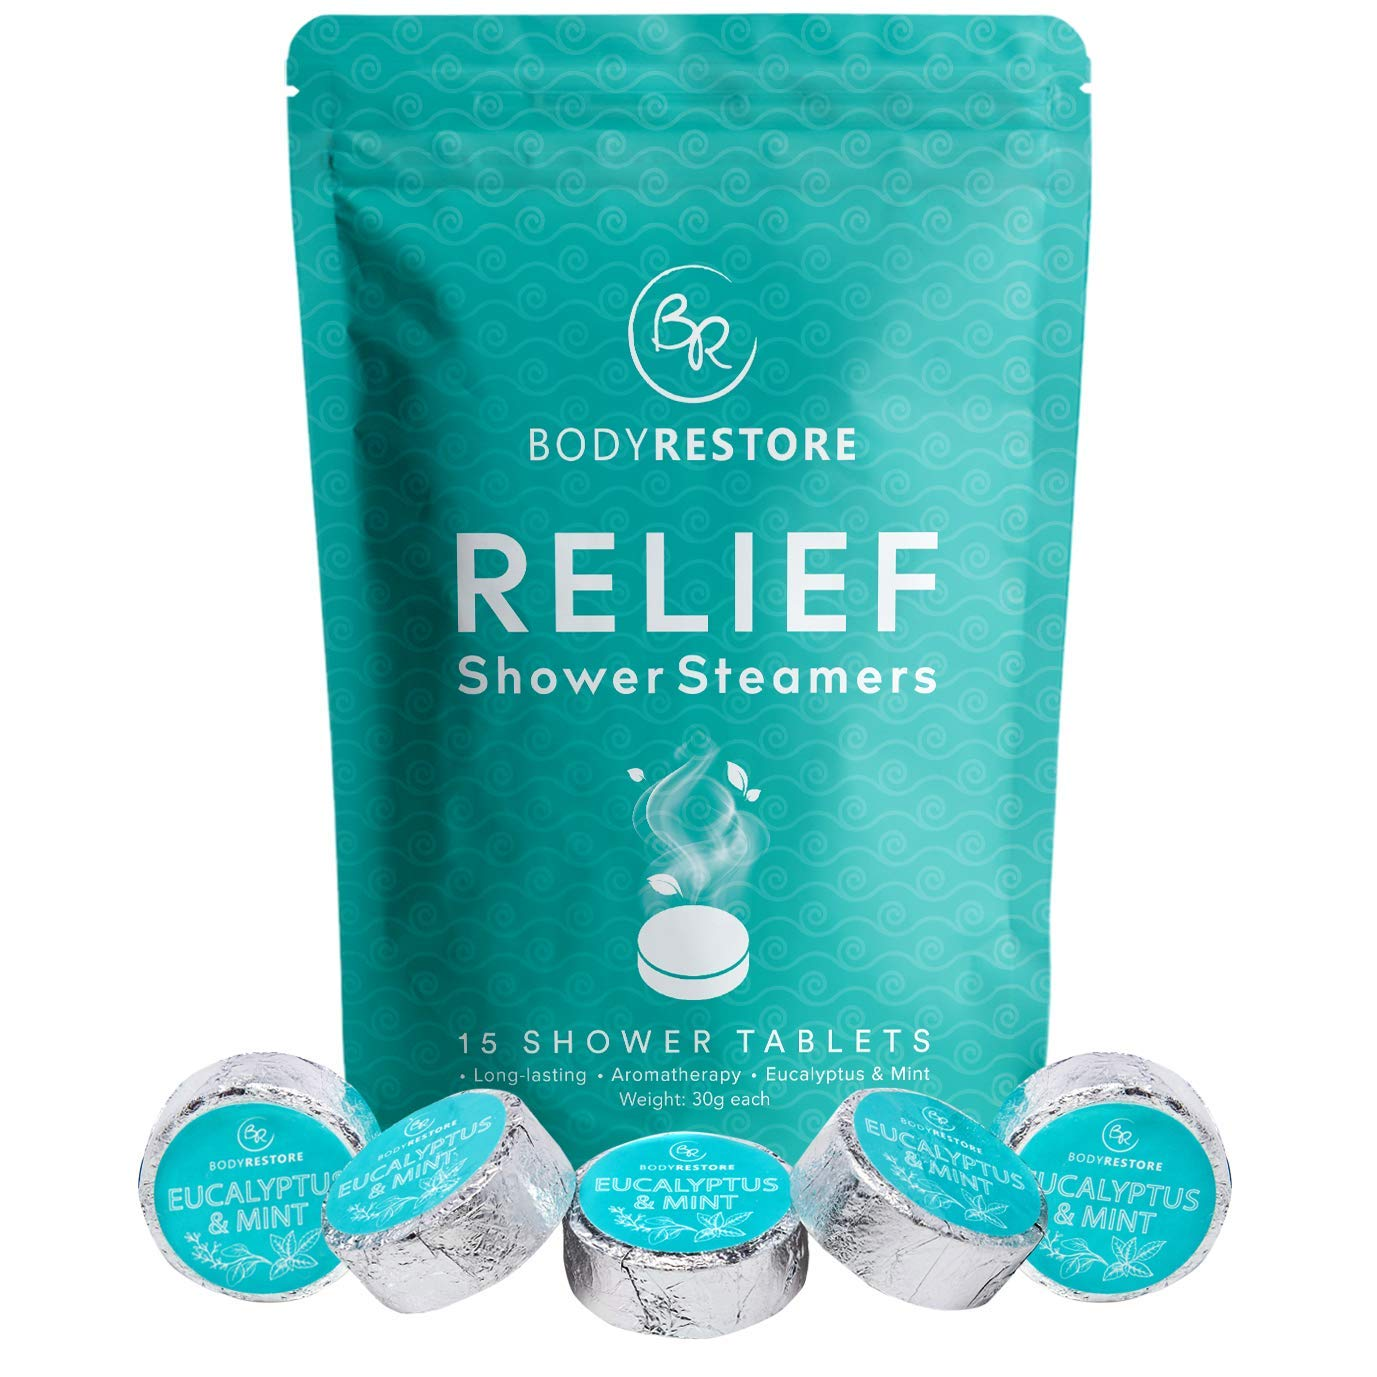 BodyRestore Shower Steamers (Pack of 15) Gifts for Women and Men - Eucalyptus & Peppermint Essential Oil Scented Aromatherapy Shower Bomb, Nasal Congestion Relief Shower Tablets